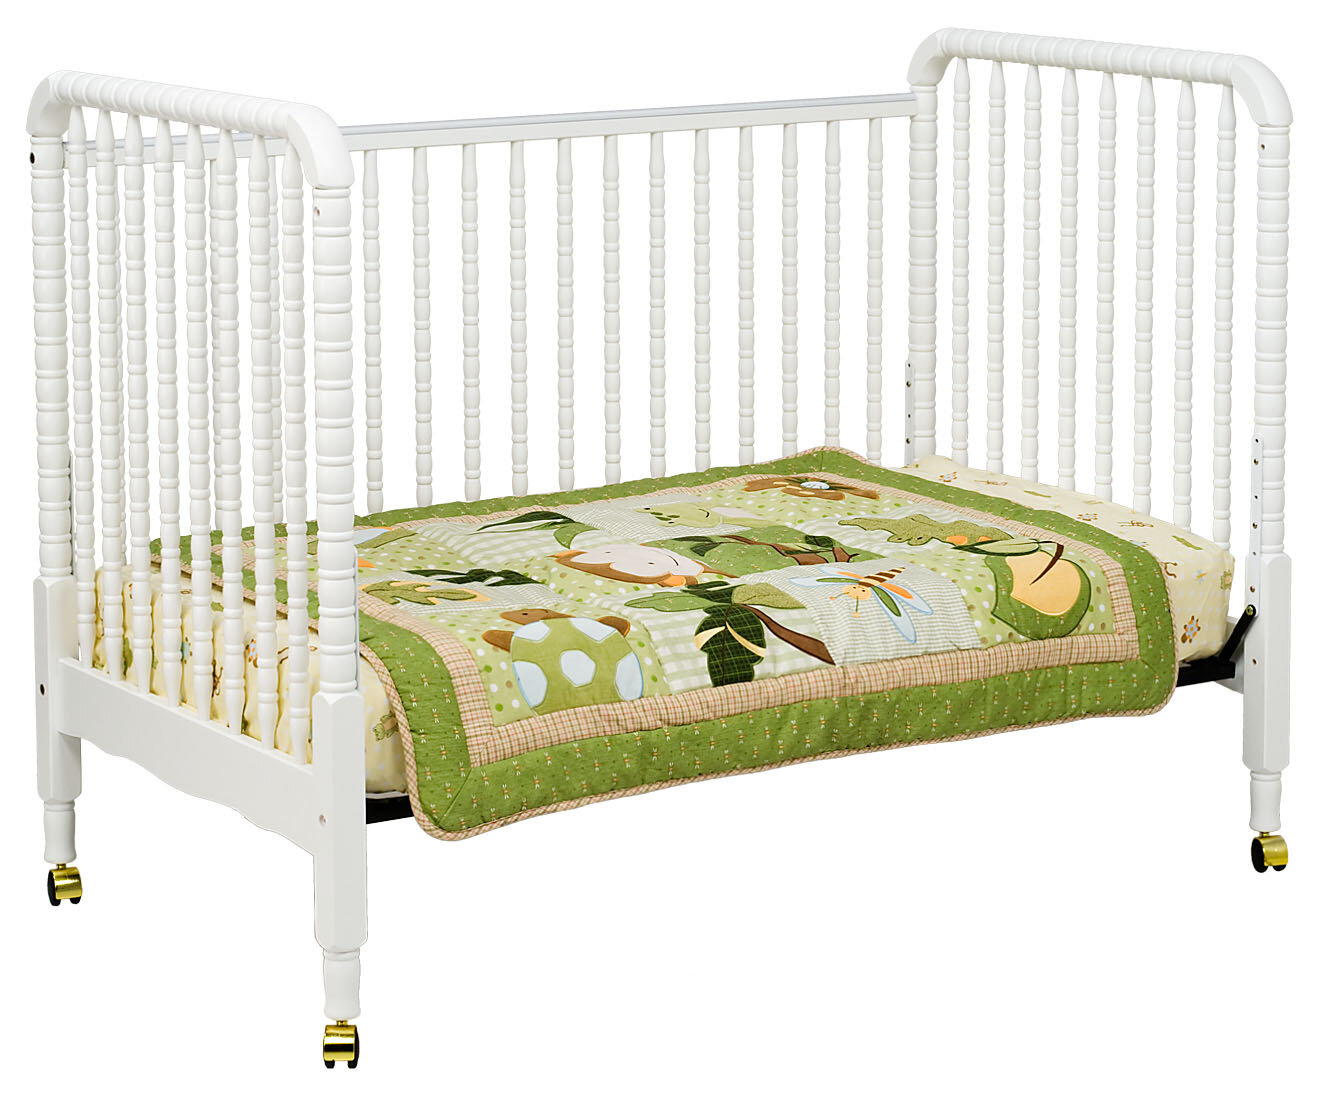 Jenny Lind Crib To Toddler Bed